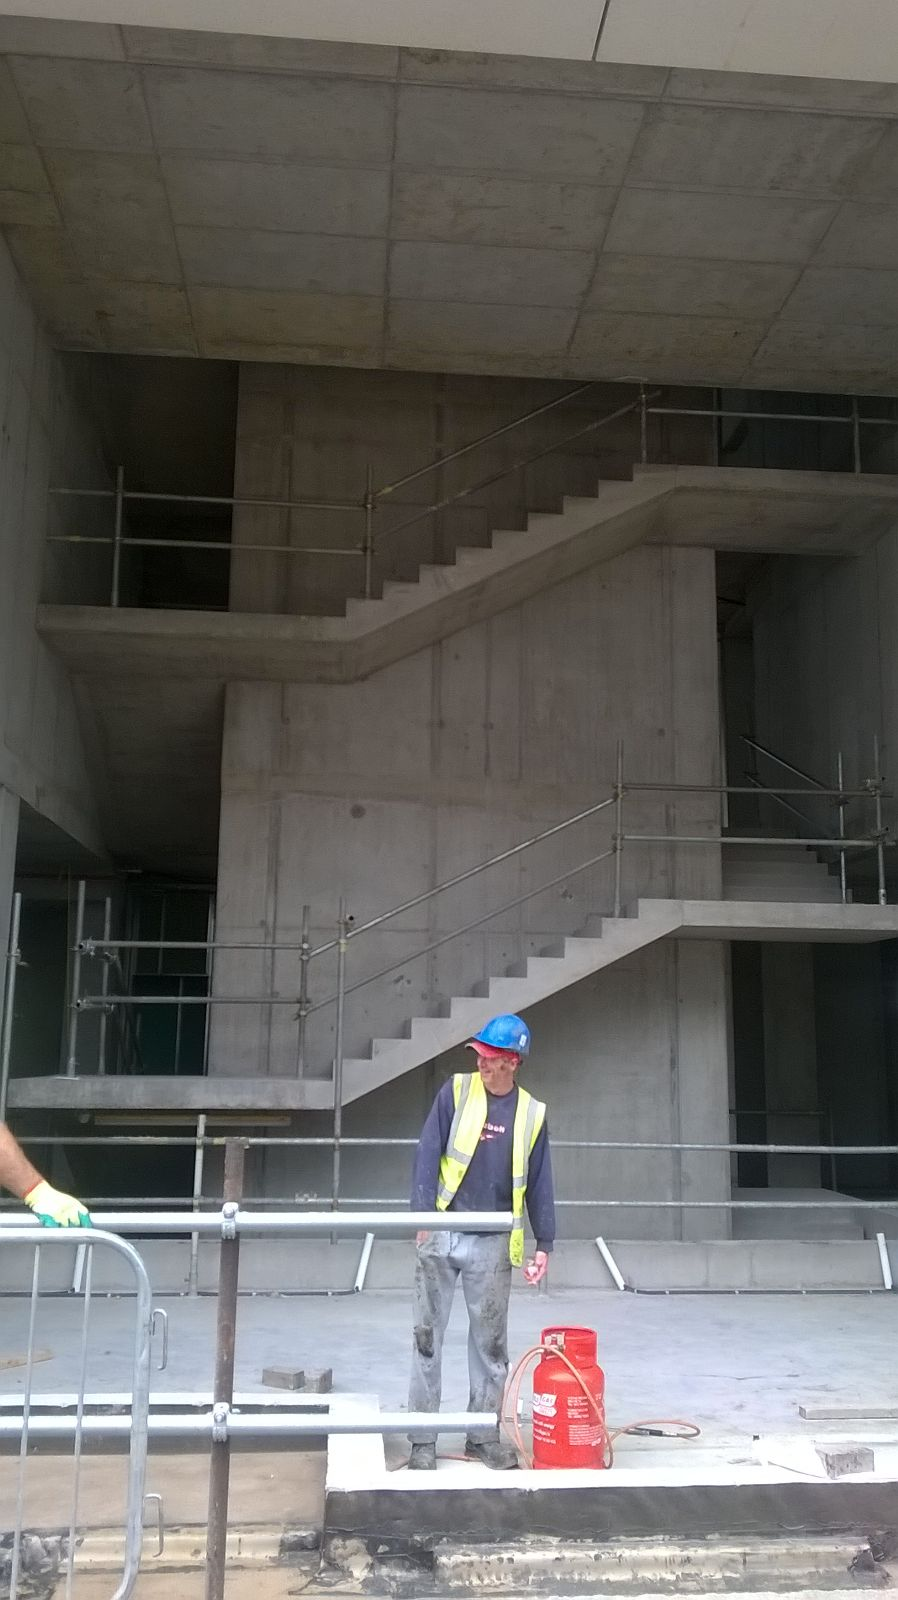 1 -Partial view of feature stairs prior to commencement